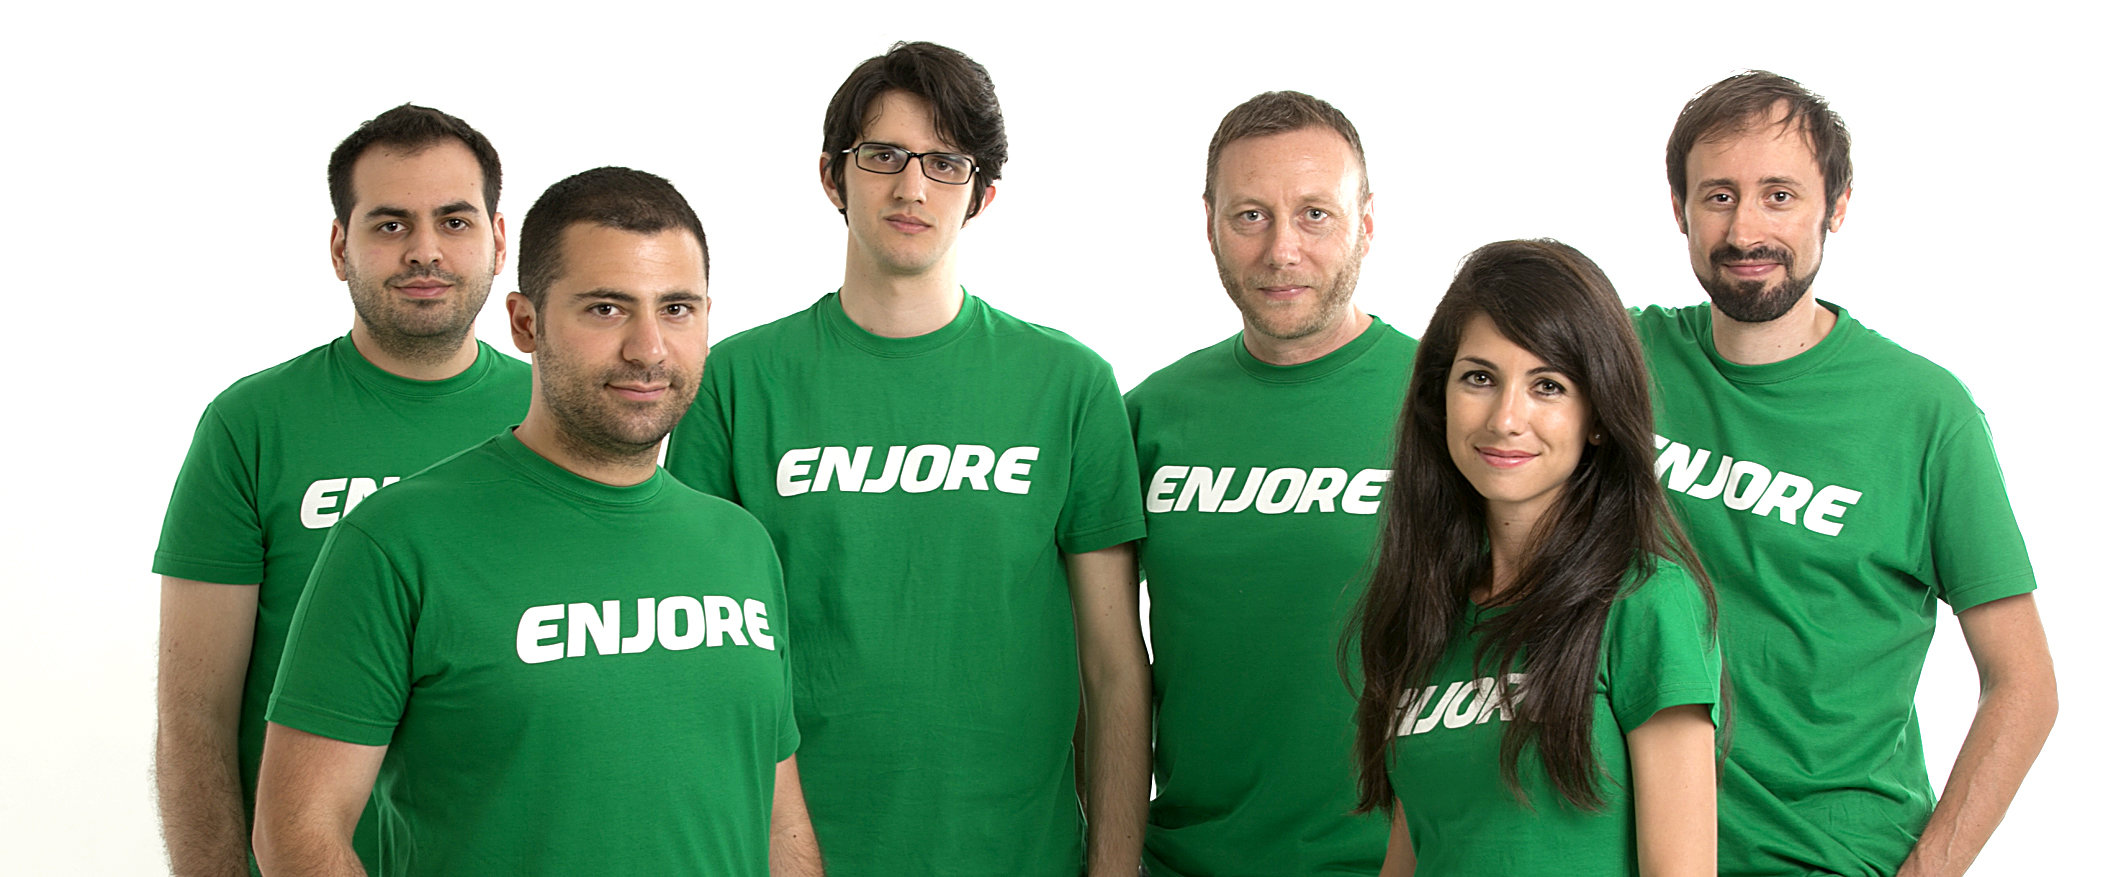 enjore_team